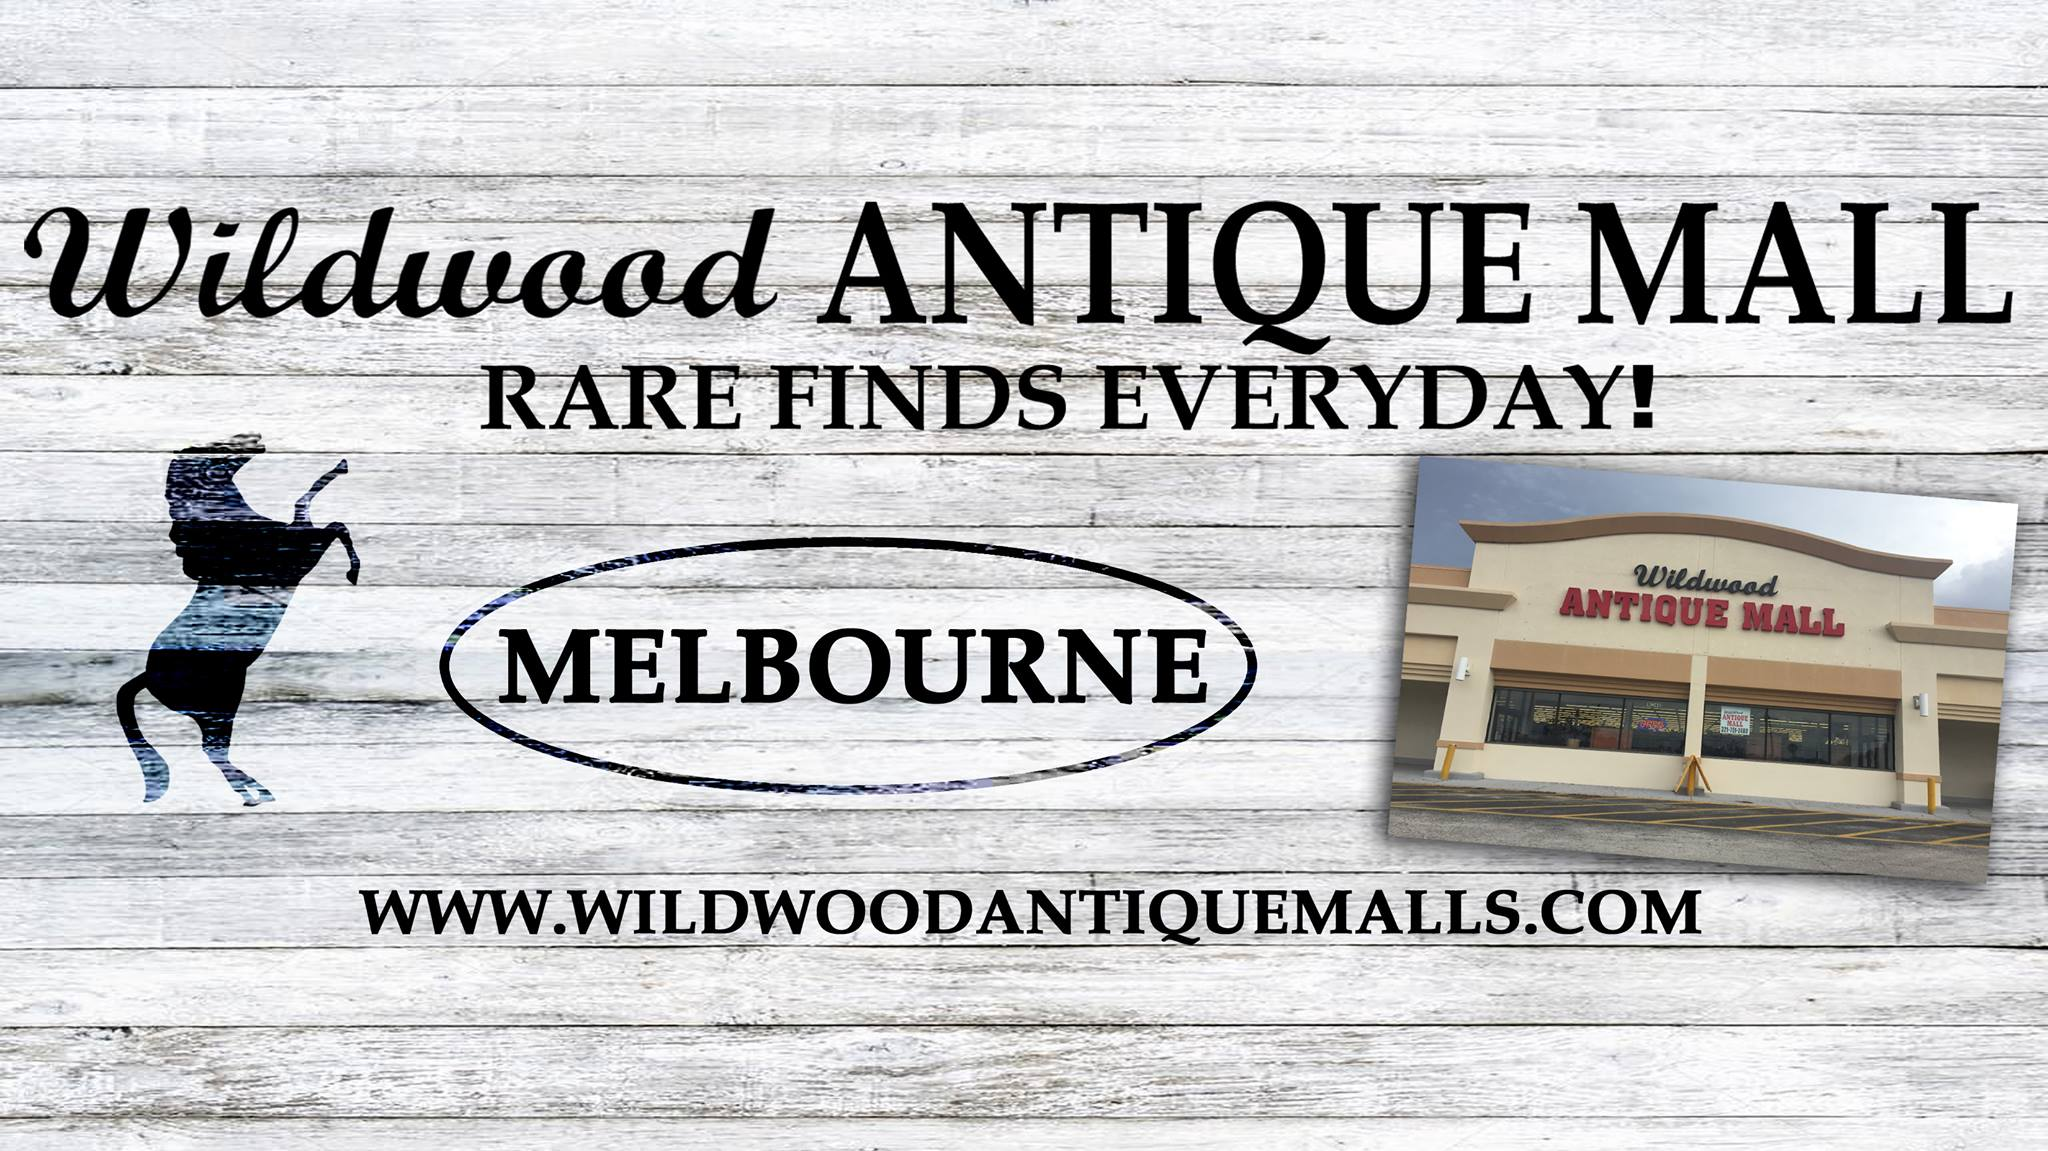 Wildwood Antique Mall of Melbourne reviews | Furniture Stores at 850 N Apollo Blvd - Melbourne FL